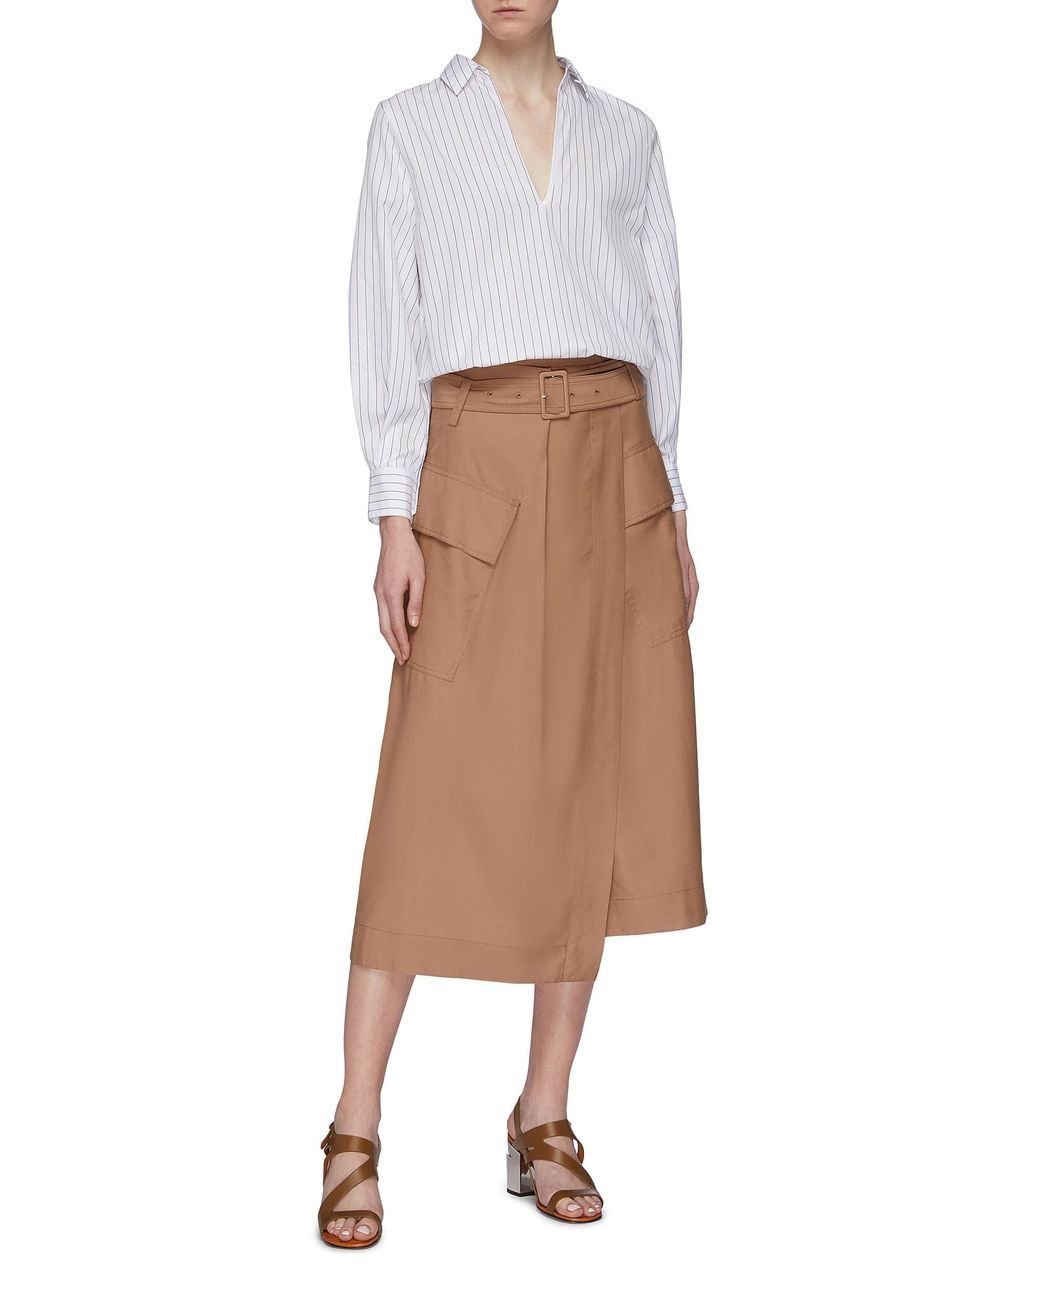 5793fb0ae4 Women's Brown Belted Cargo Pocket Wrap Utility Midi Skirt in 2019 ...